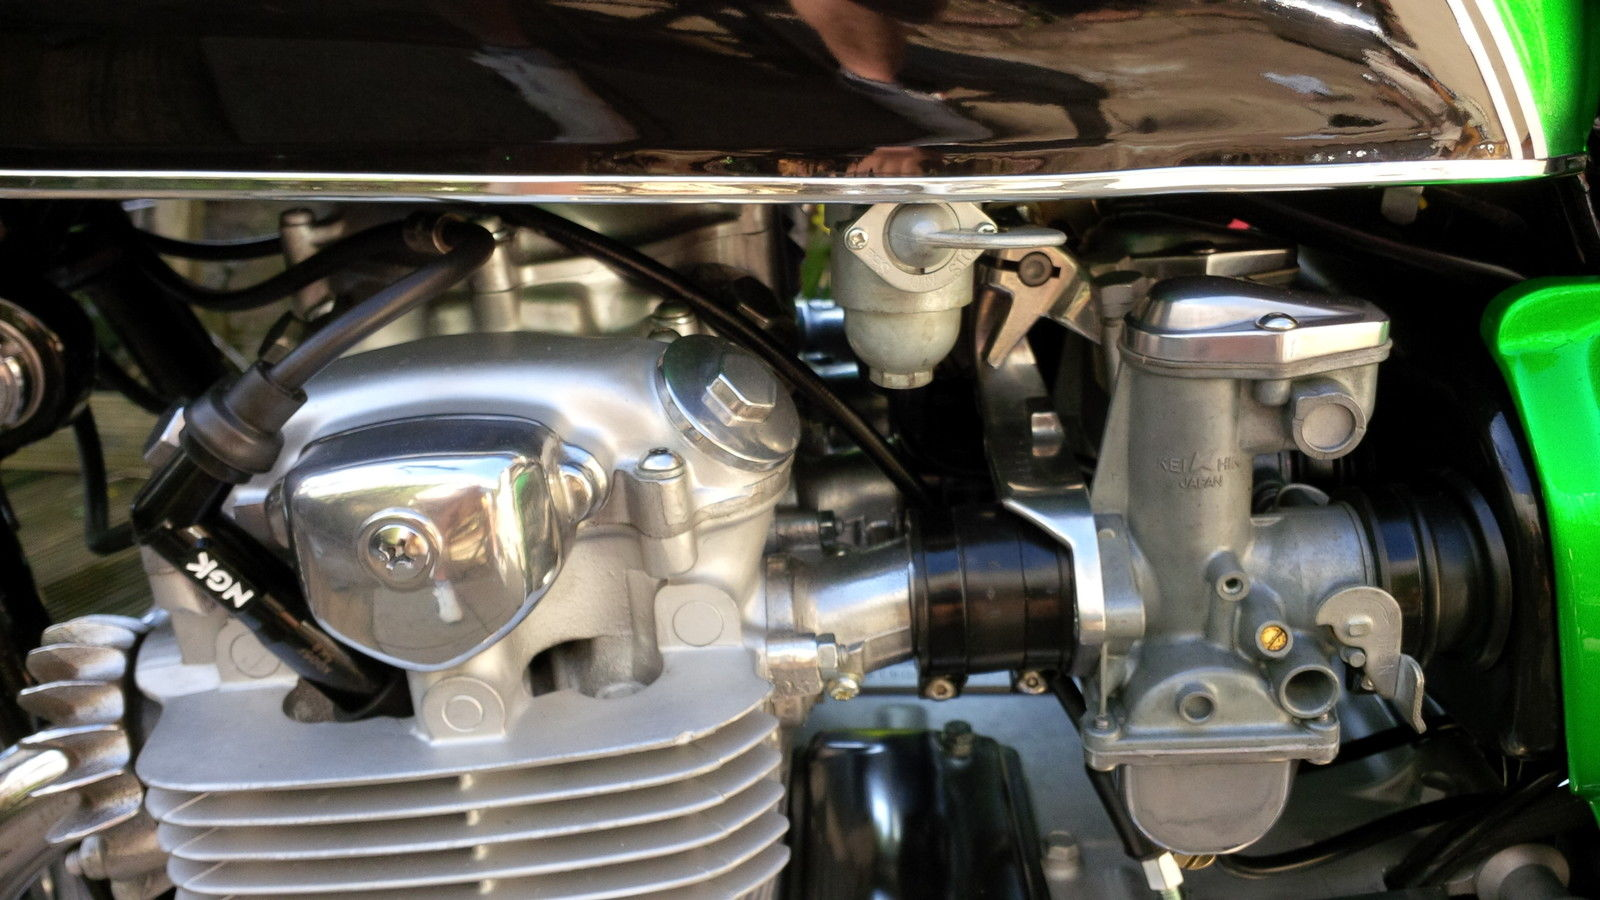 Honda CB500 Four - 1972 - Fuel Tap, Carburettor, Cylinder Head, Valve Adjustment.